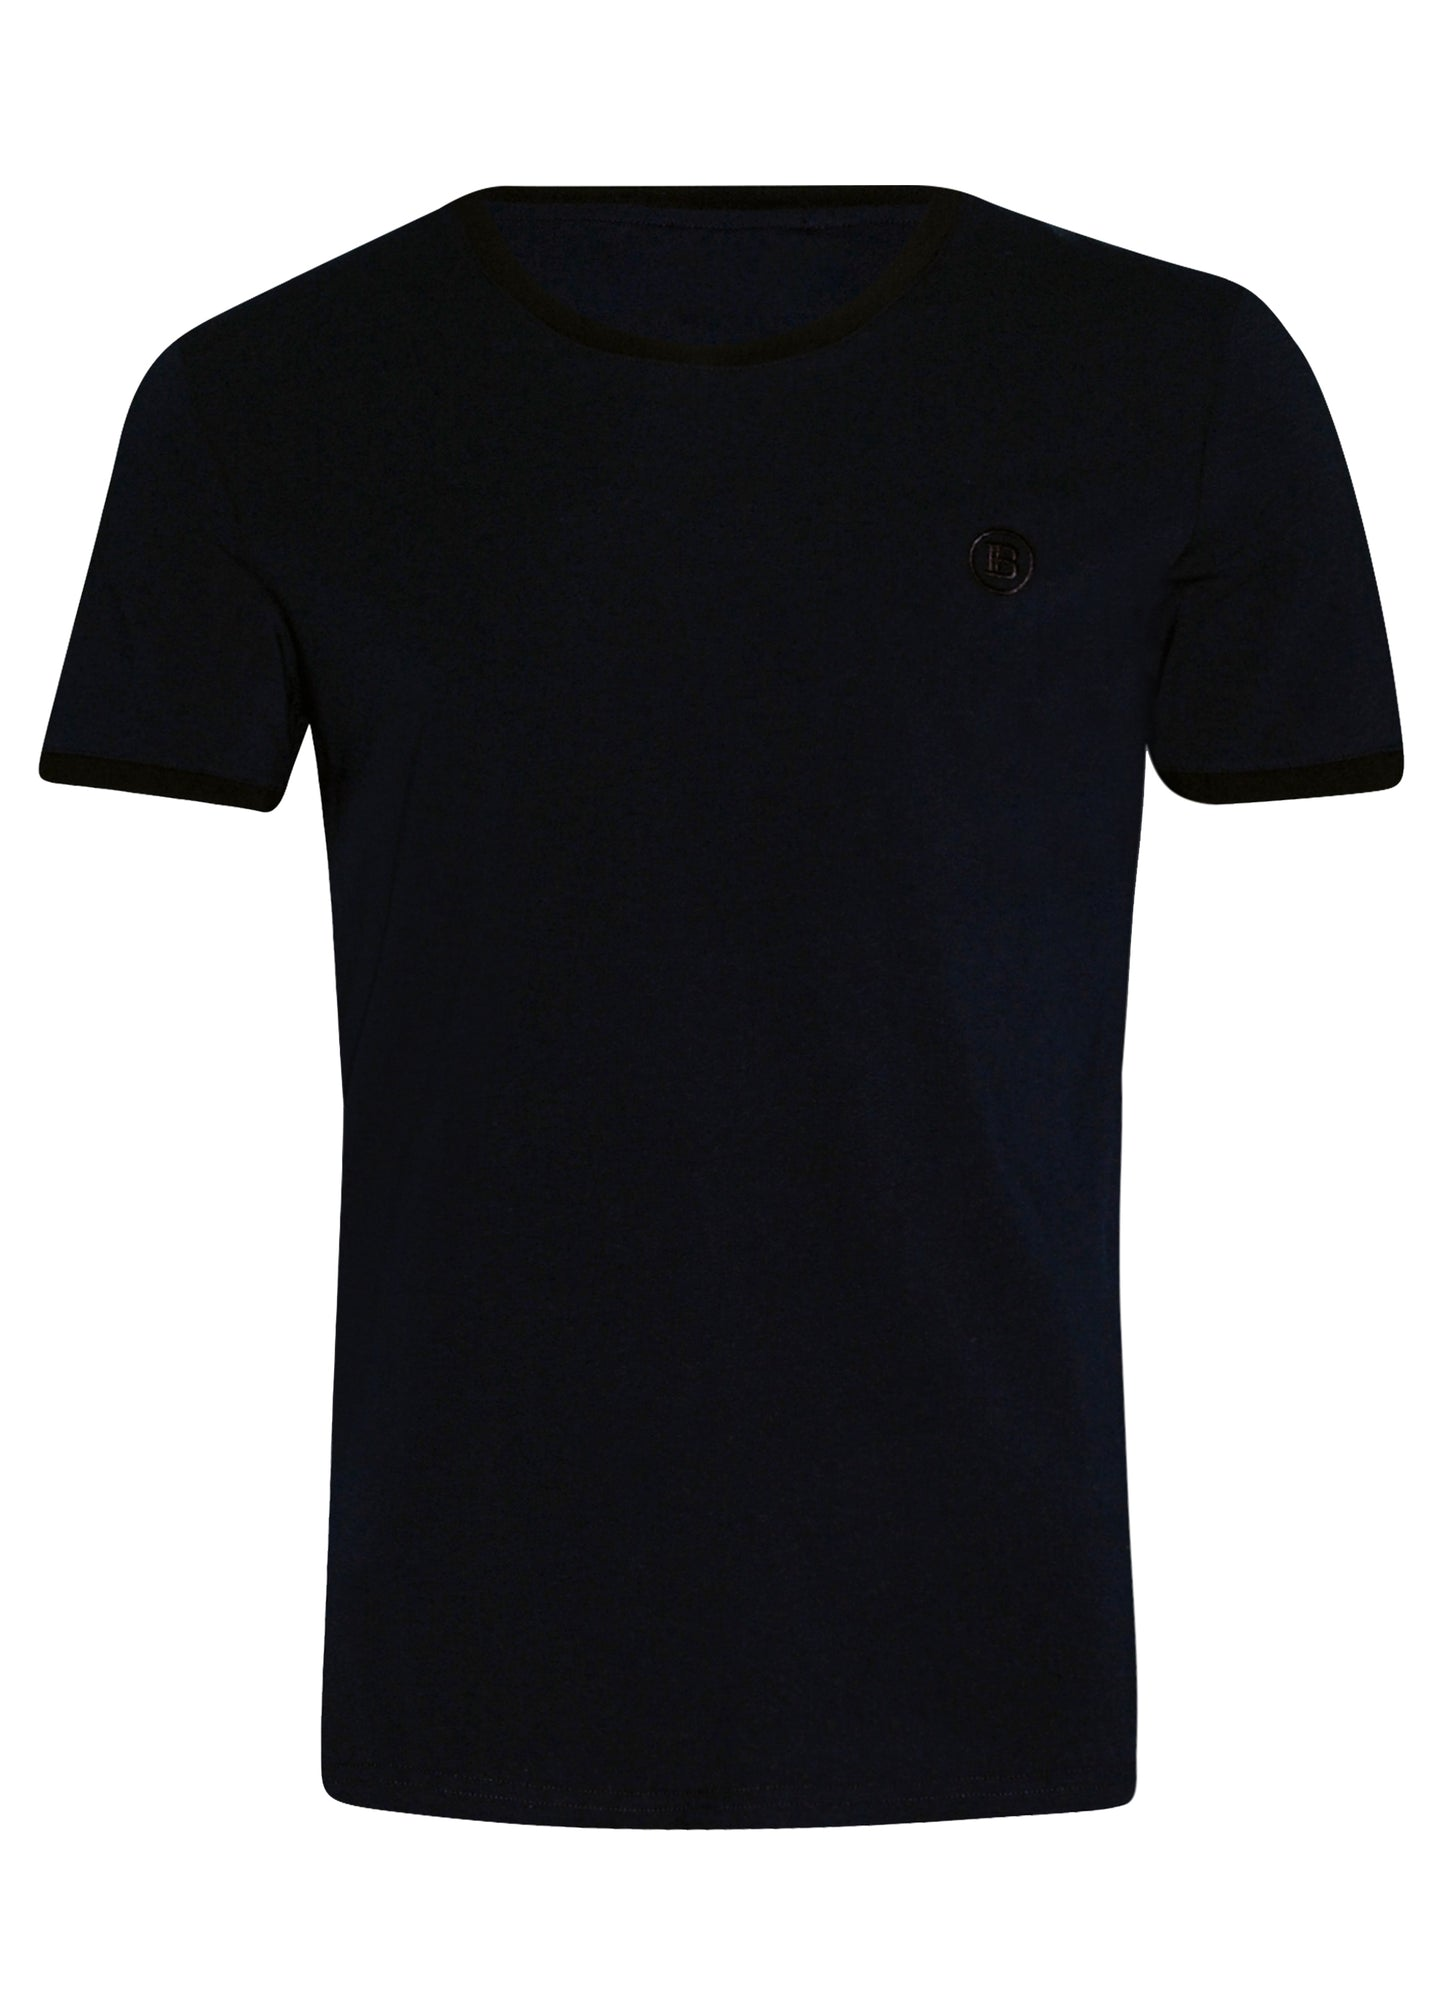 Balmain - Crewneck Contrast Neck and Sleeve Detail Iconic B  Embroidered On Chest Paris on Back - 100156 - Navy